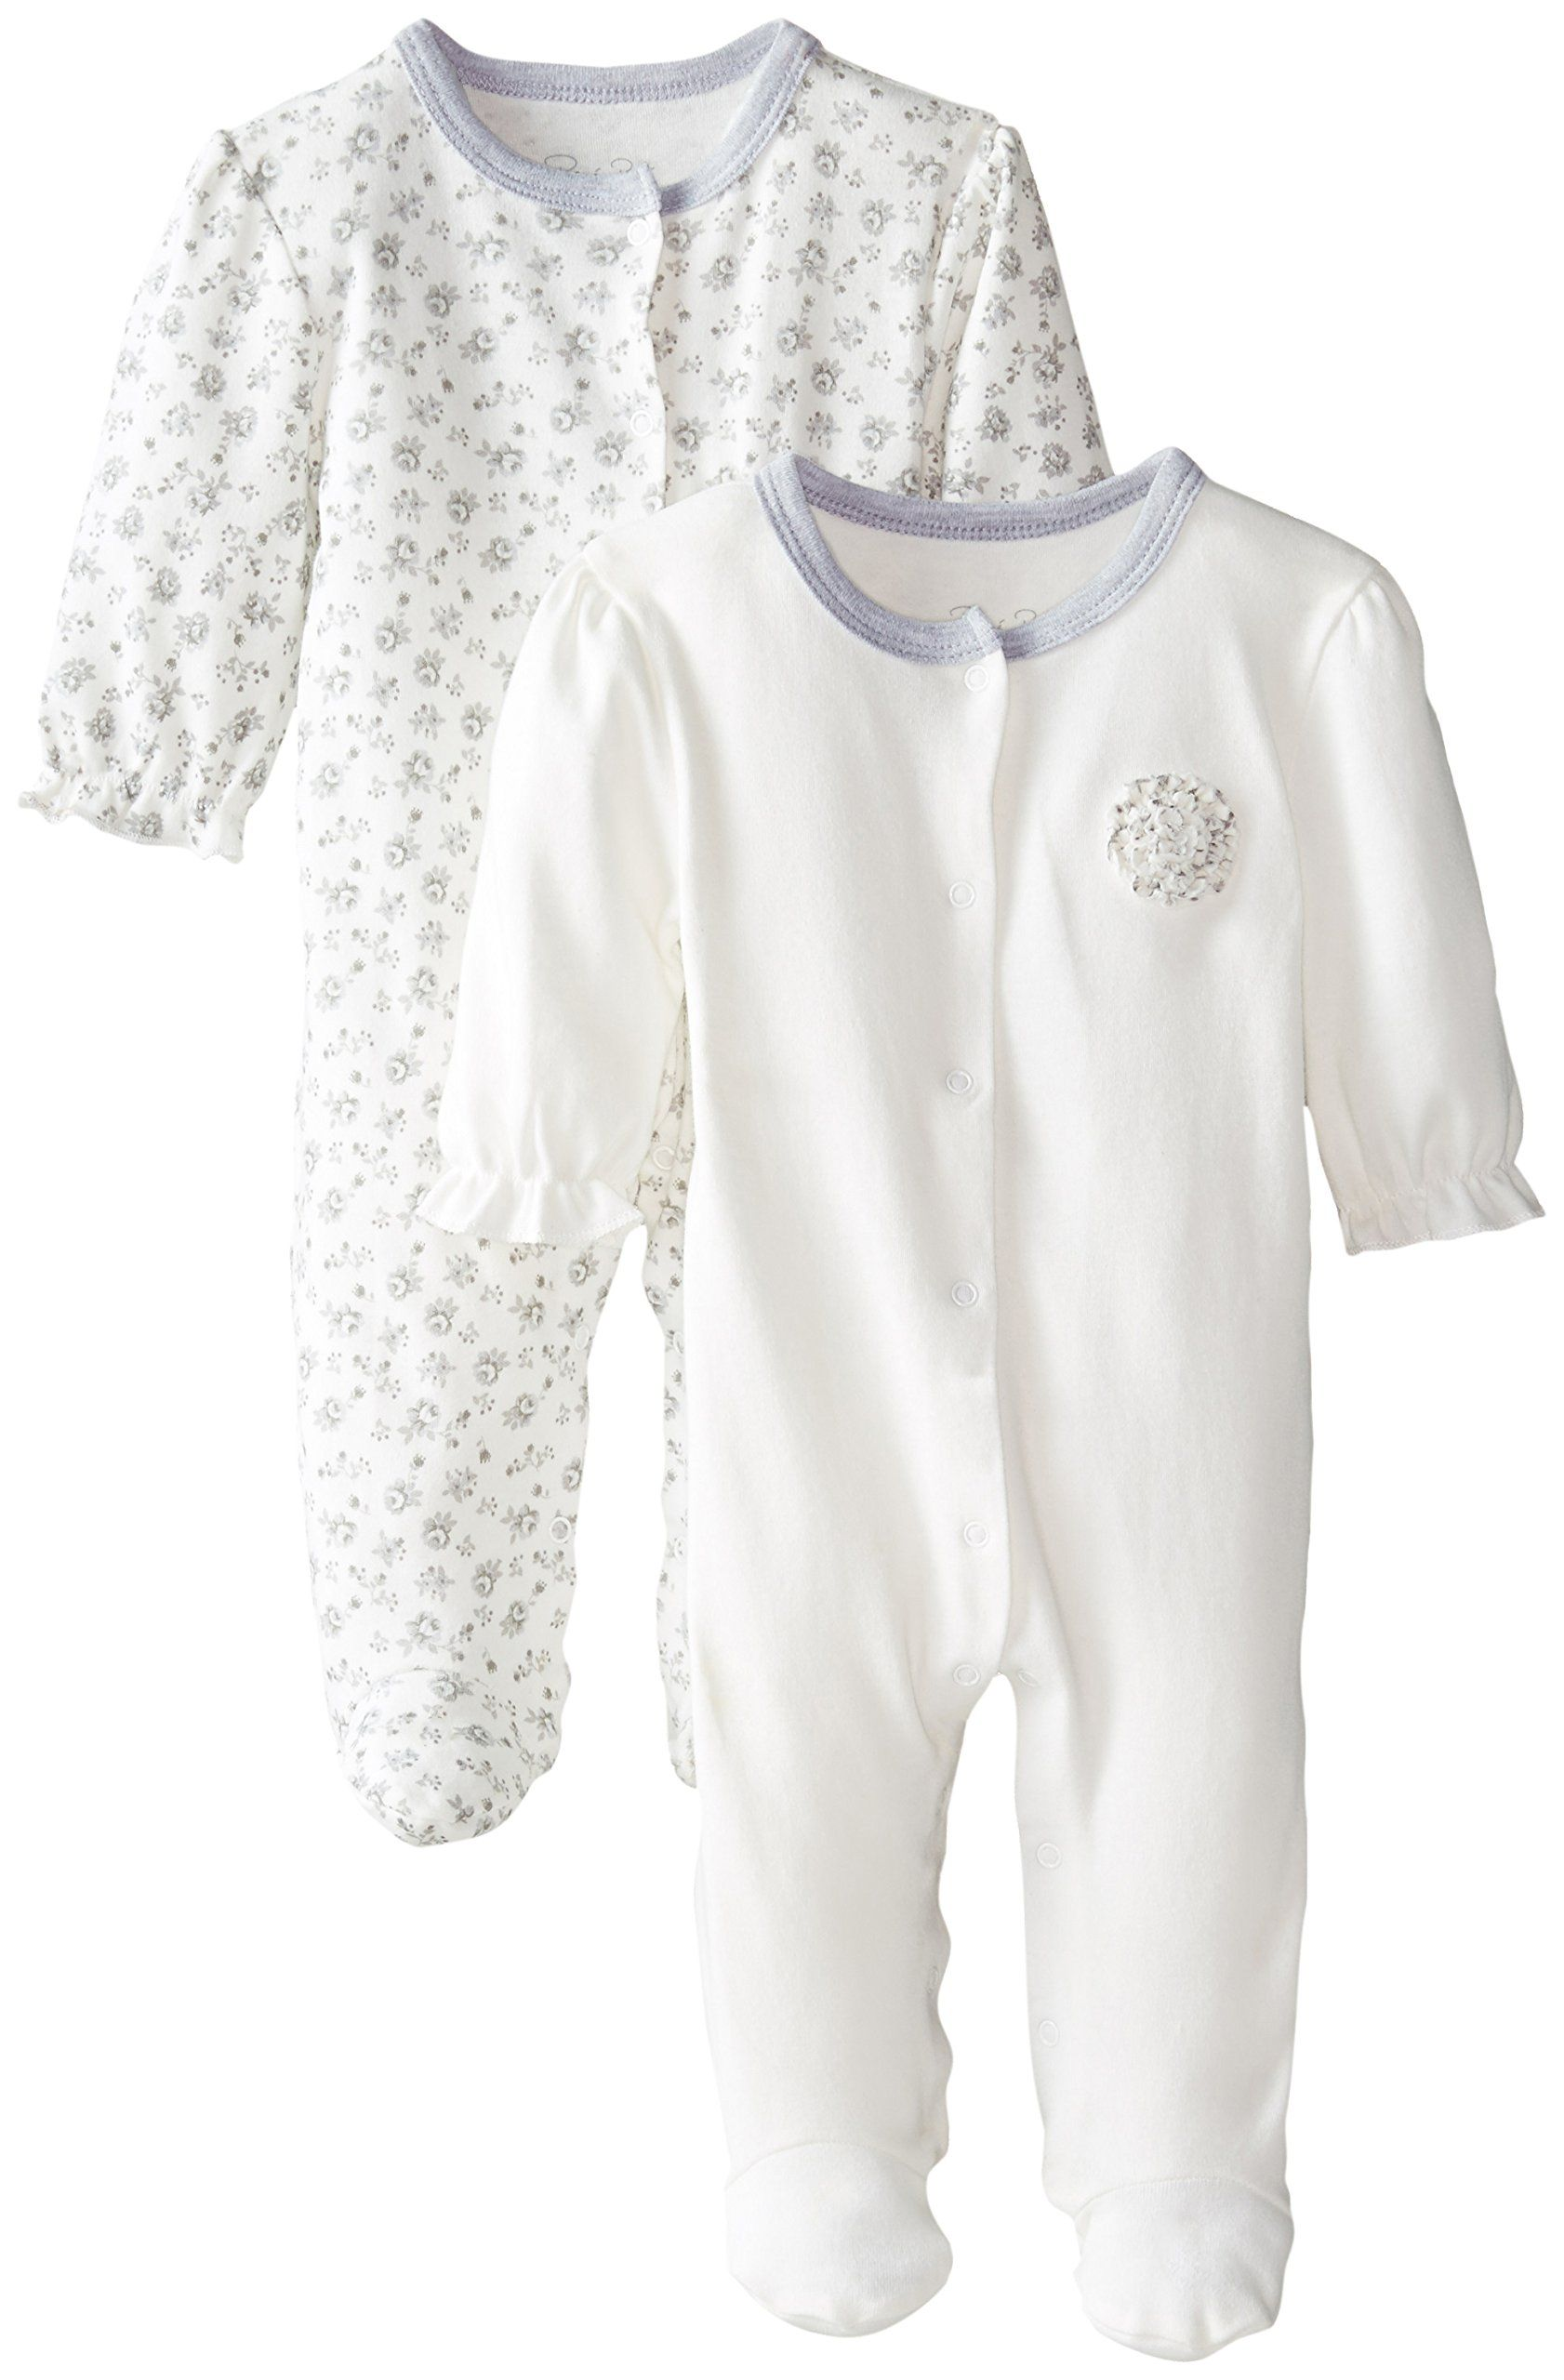 Rene Rofe Baby Baby-Girls Newborn Antique Floral 2 Pack Footed Snap Front Coverall Set, Multi, 3-6 Months